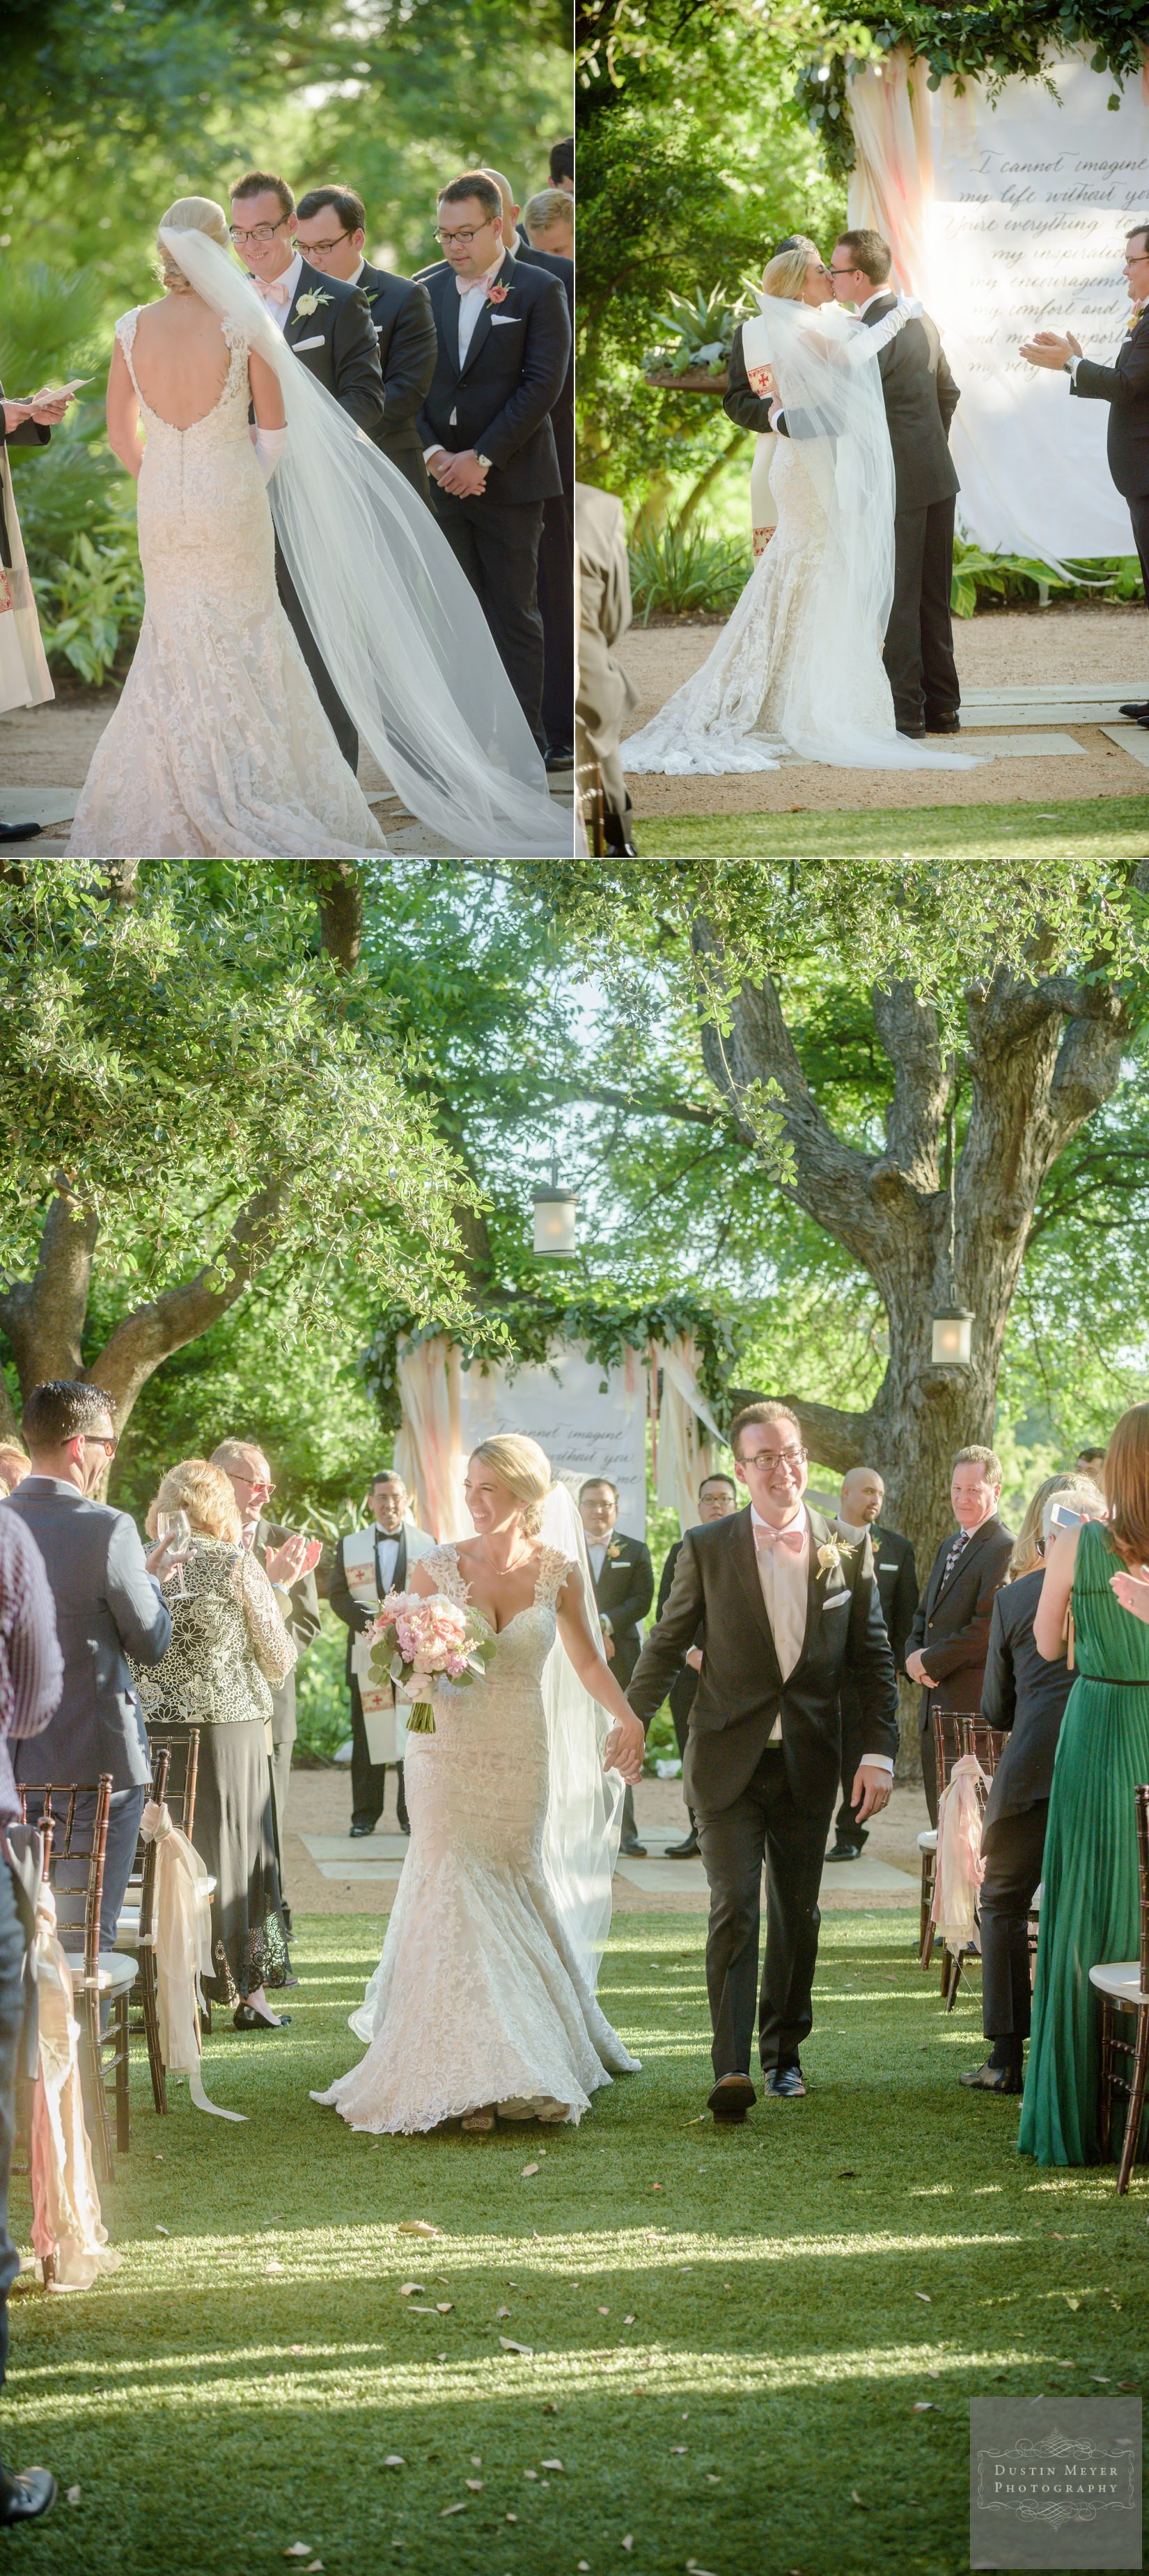 four seasons wedding, bride and groom outdoor wedding ceremony